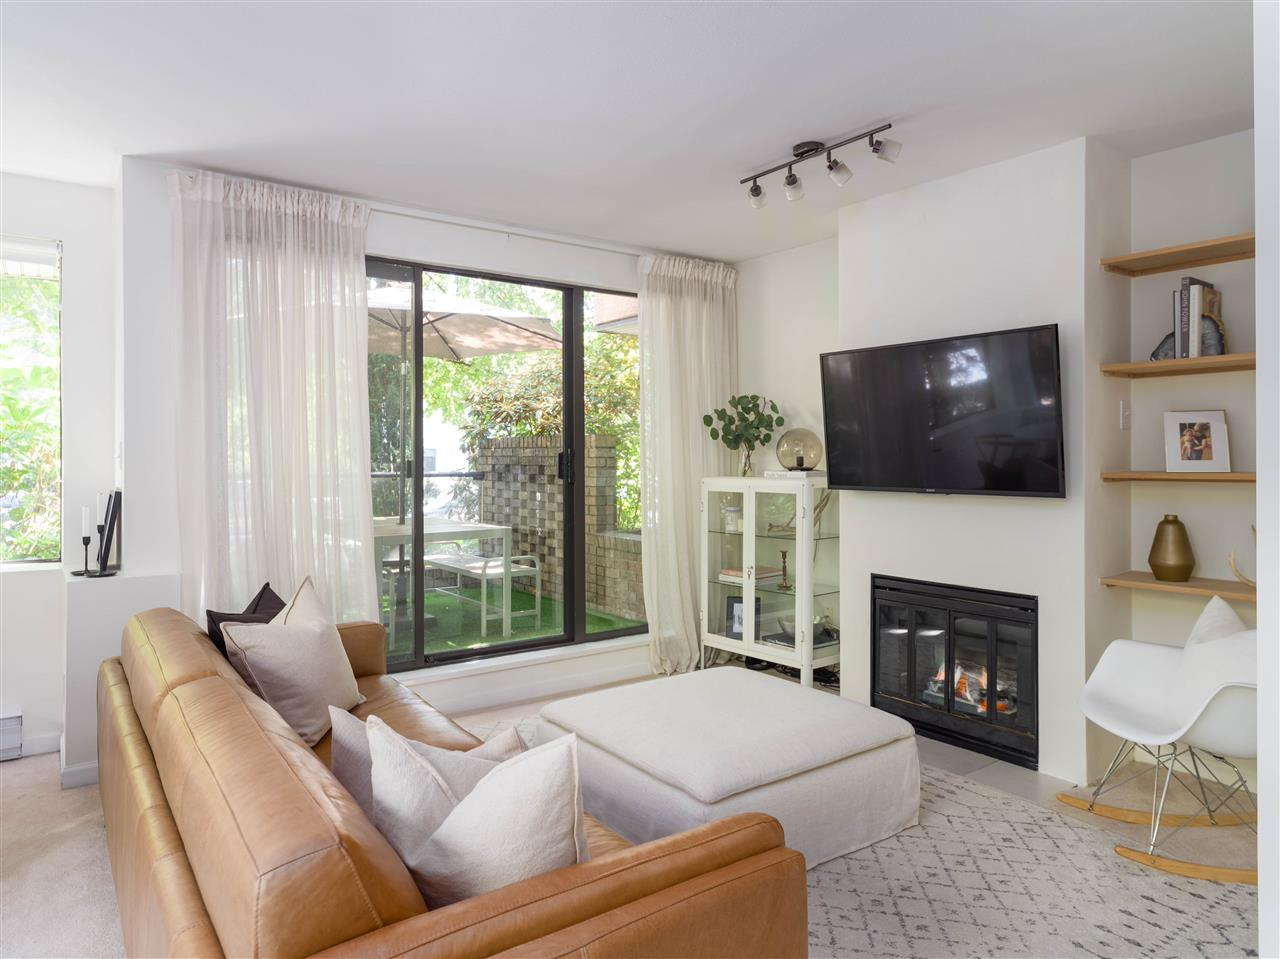 104 1702 CHESTERFIELD AVENUE - Central Lonsdale Apartment/Condo for sale, 2 Bedrooms (R2482500) - #1